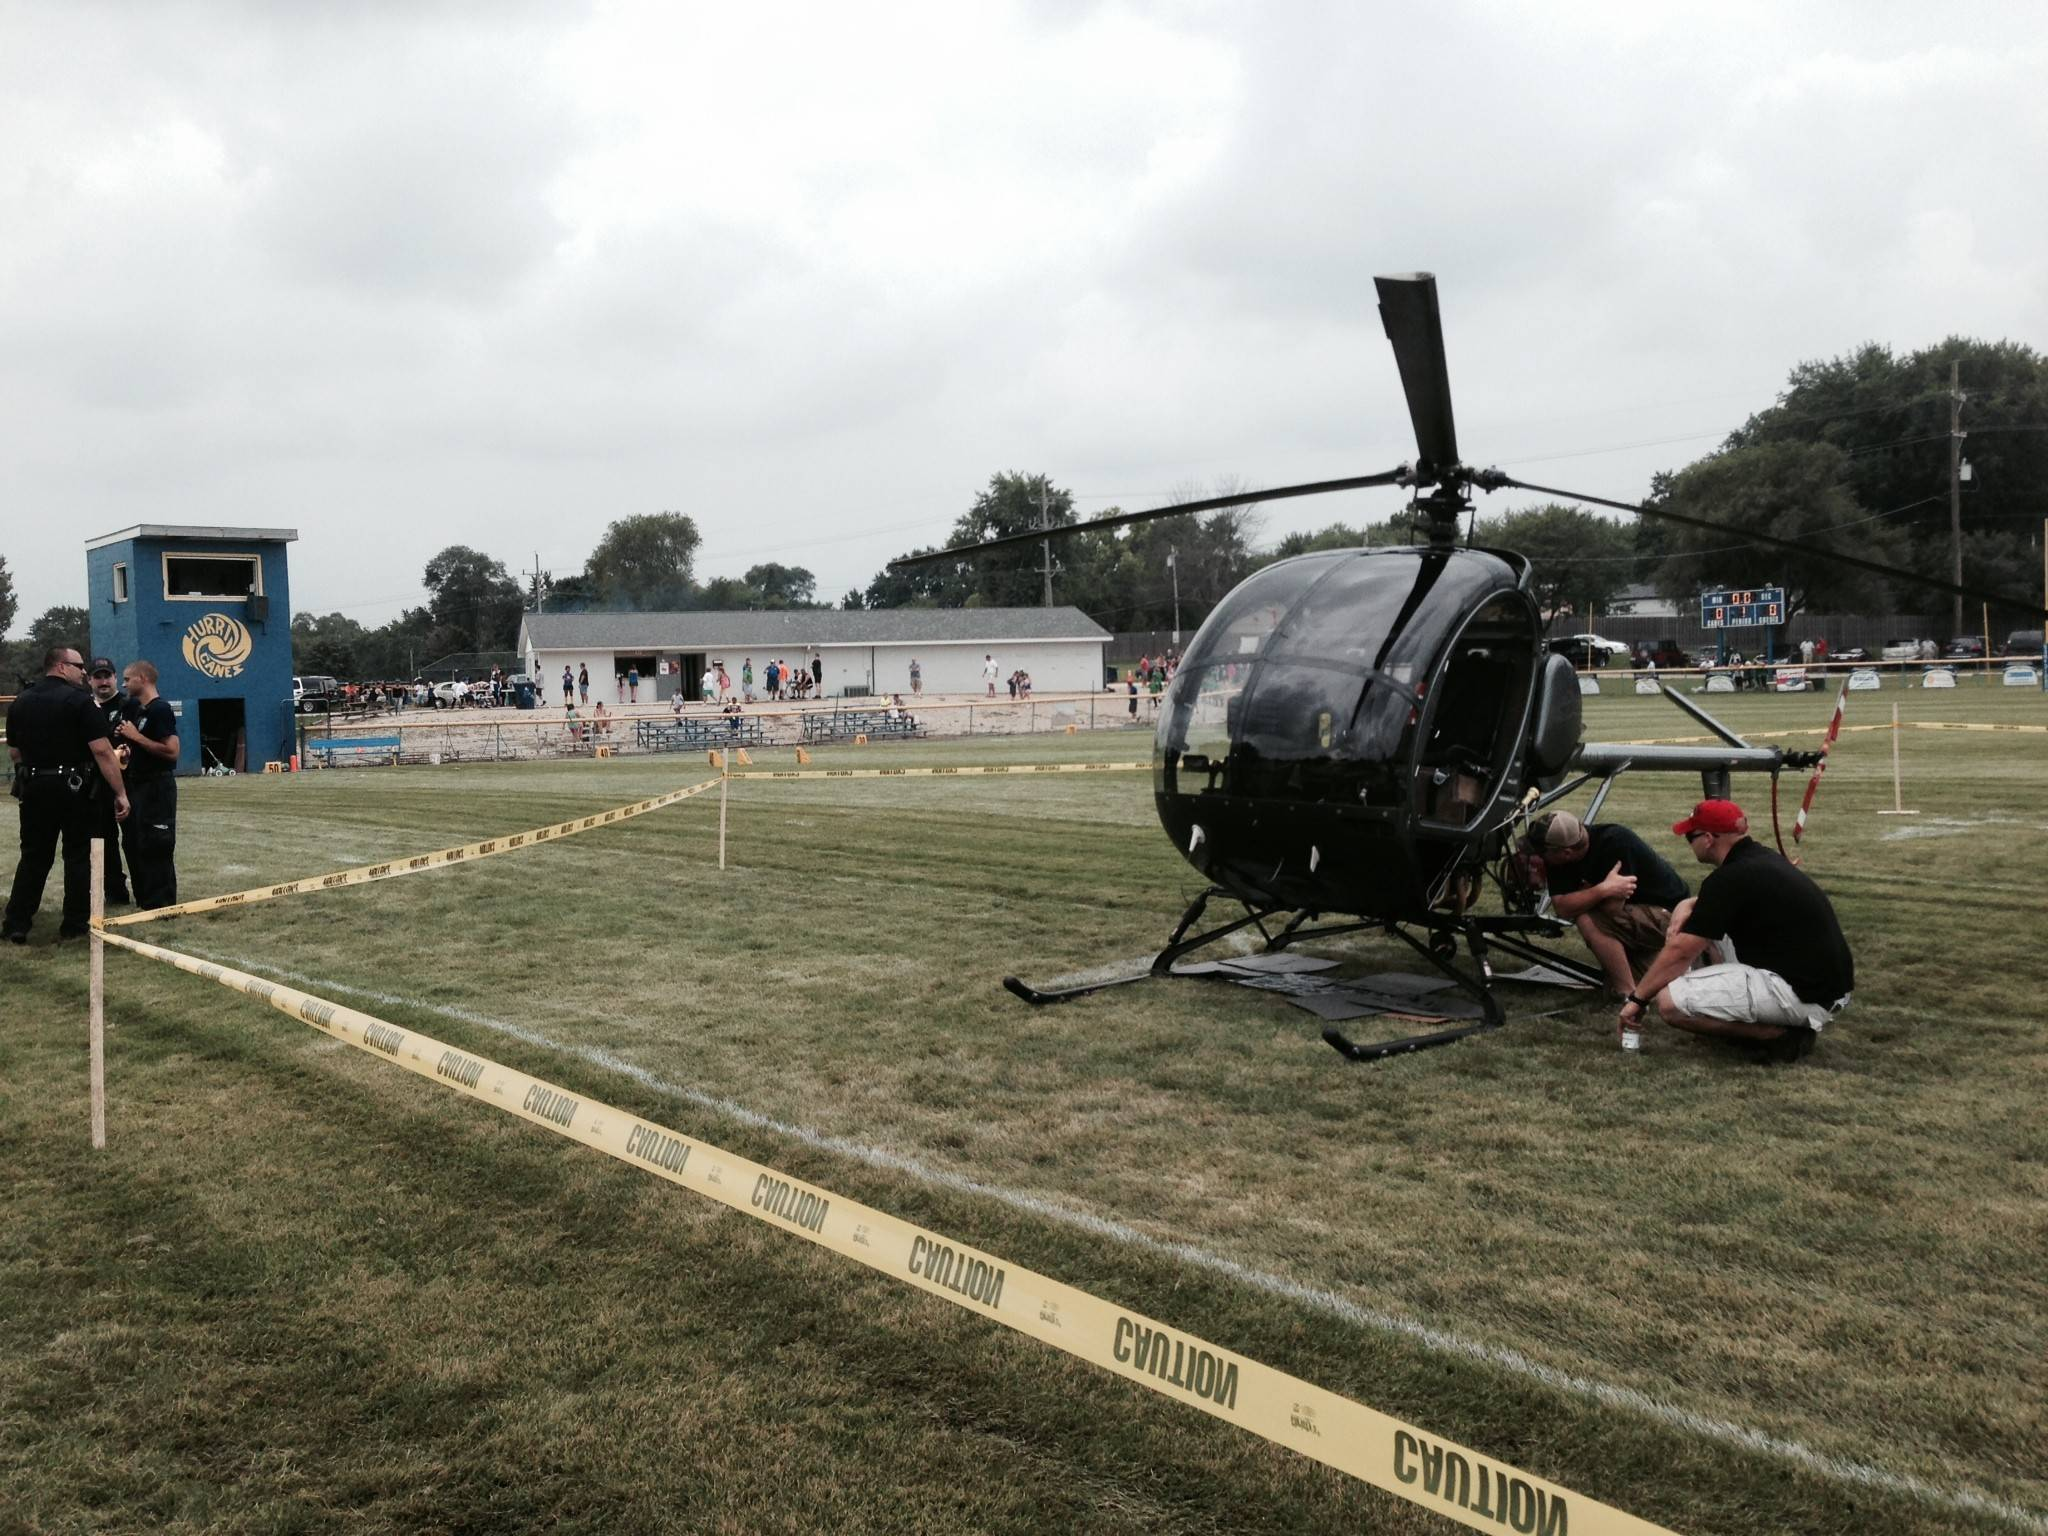 """The football field is kind of a wreck,"" Craig said of the damage after the emergency landing."